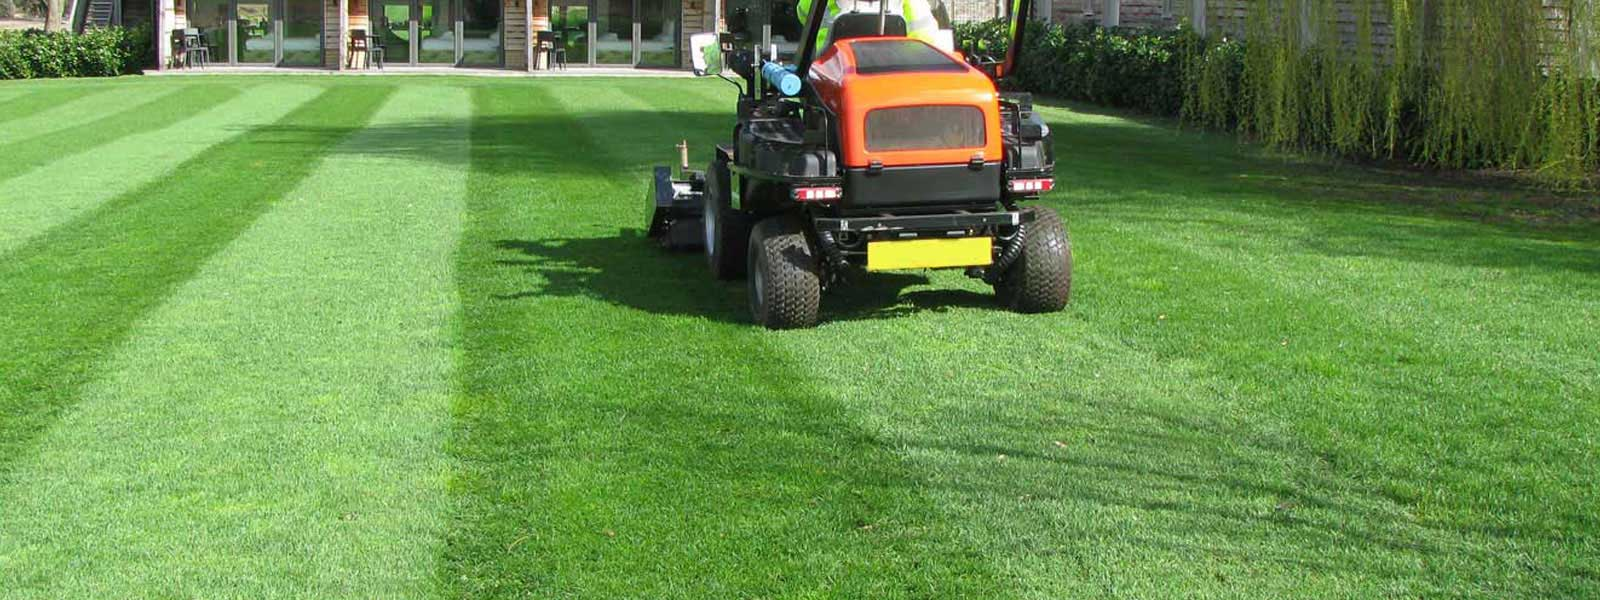 Ride on mower on a well looked after grounds or a large house